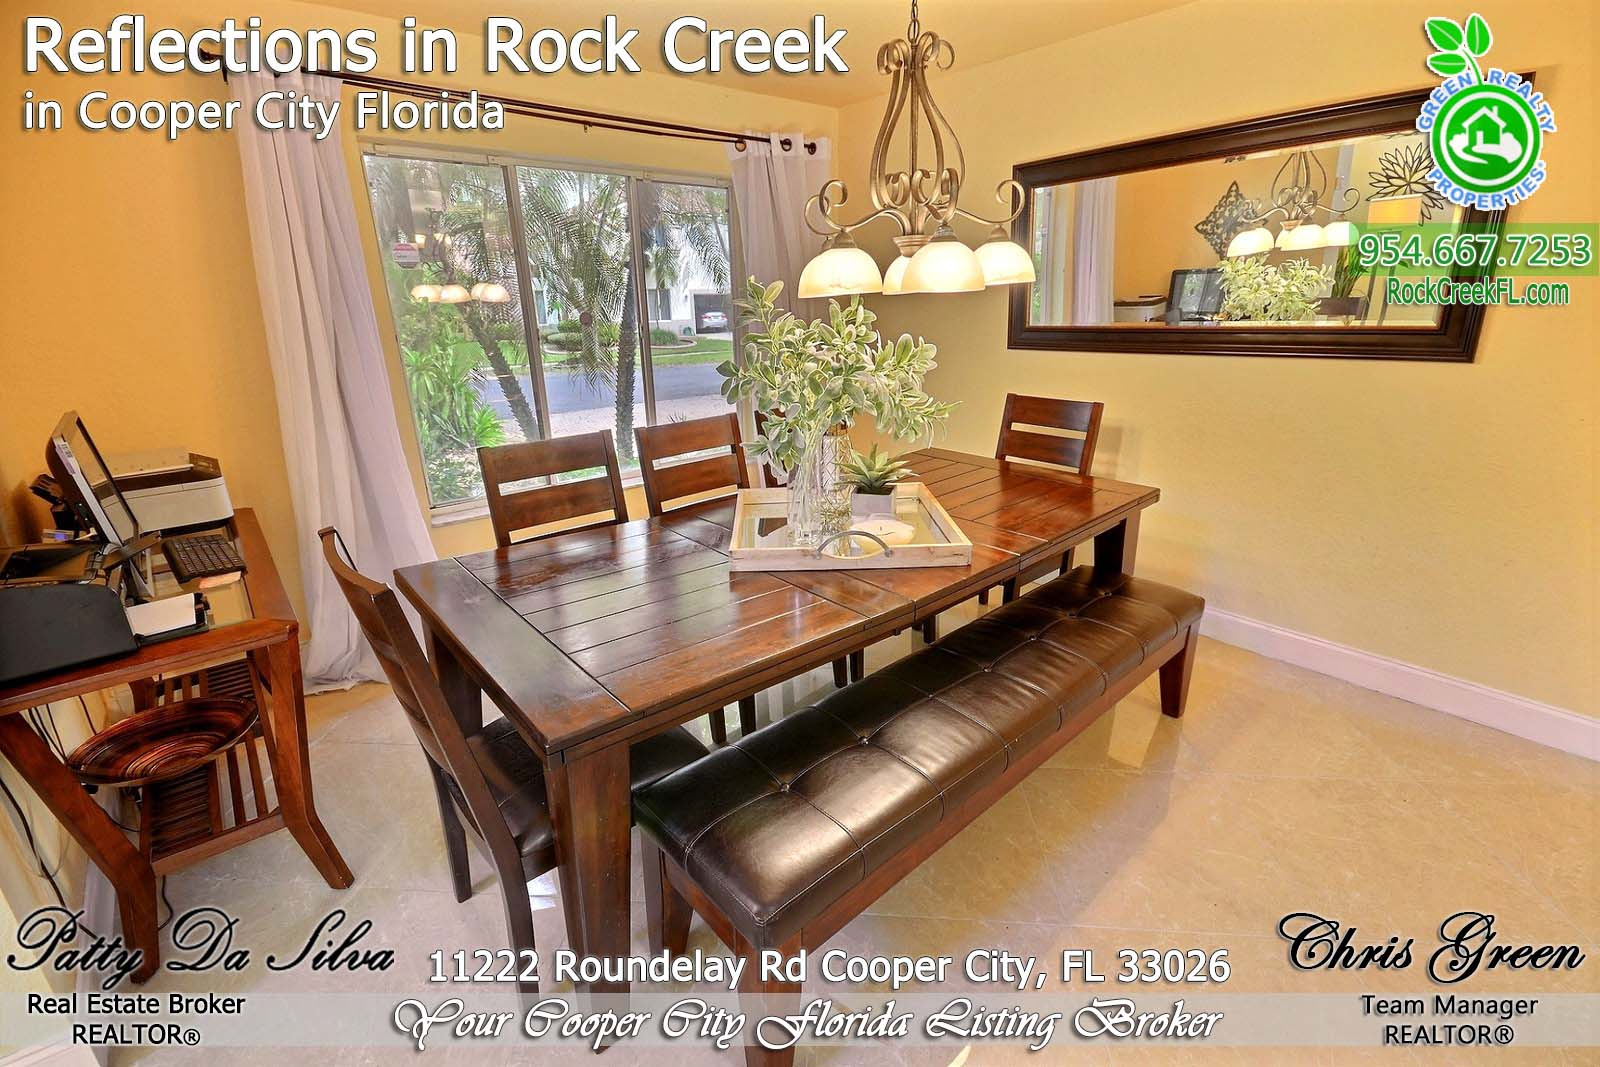 Best Reflections Rock Creek Realtors